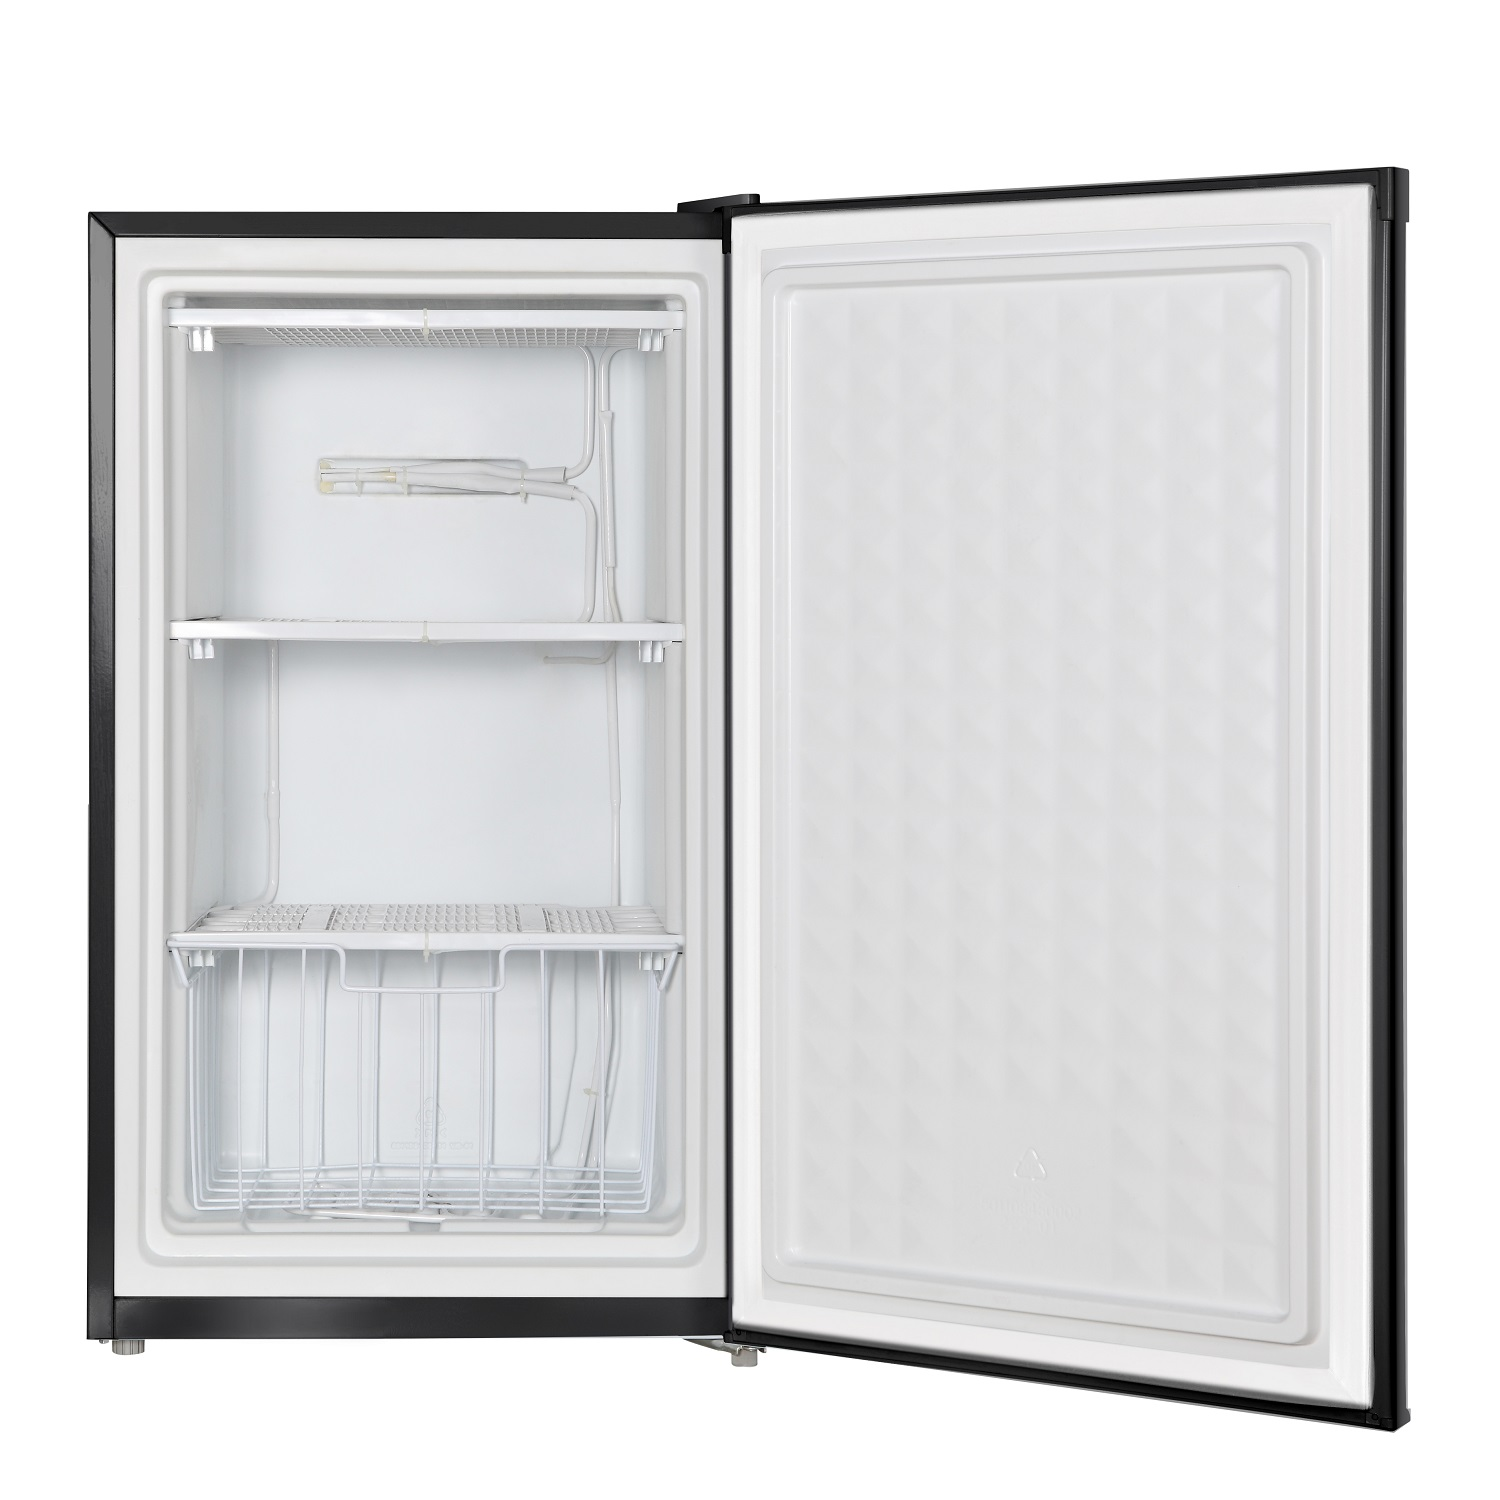 FR 109-30 B - Defrost Upright Freezer Black - Capacity 3 cu.ft